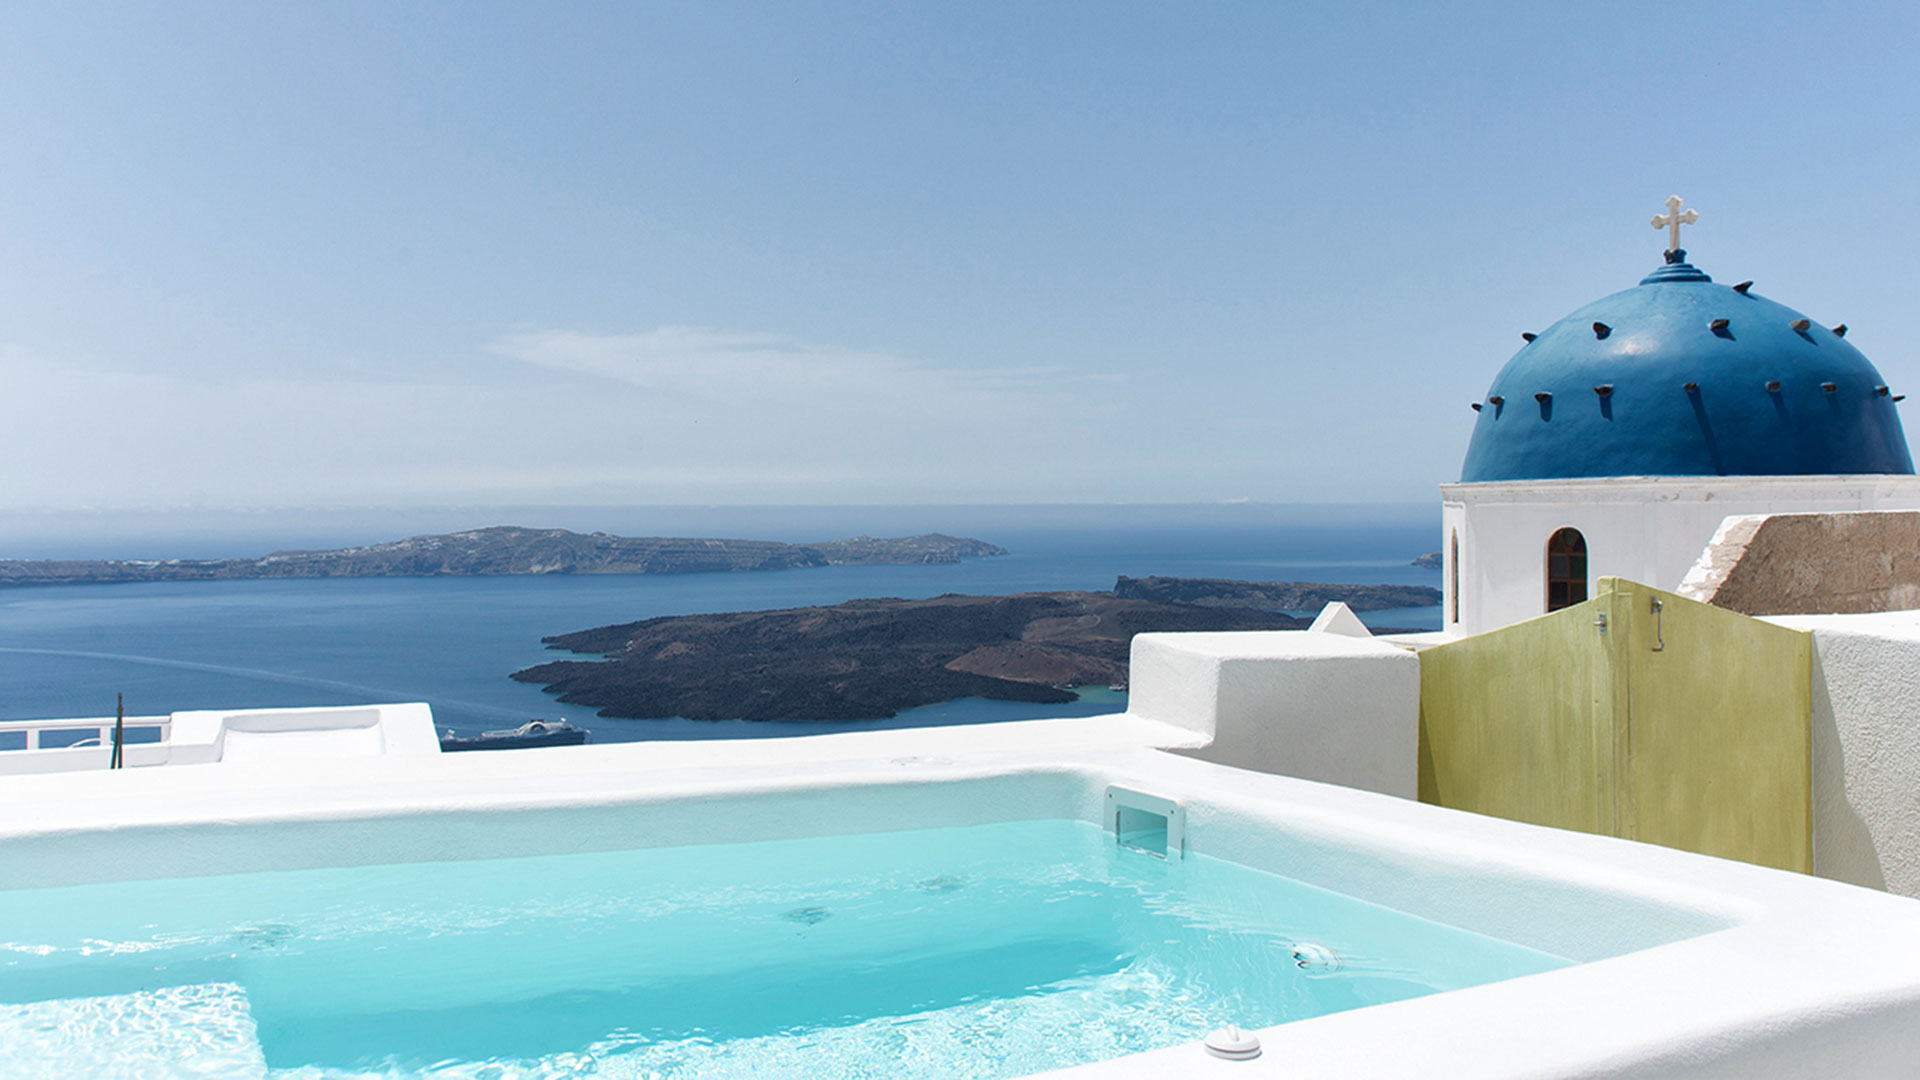 Apartments Santorini Island | Accommodation with caldera view ...